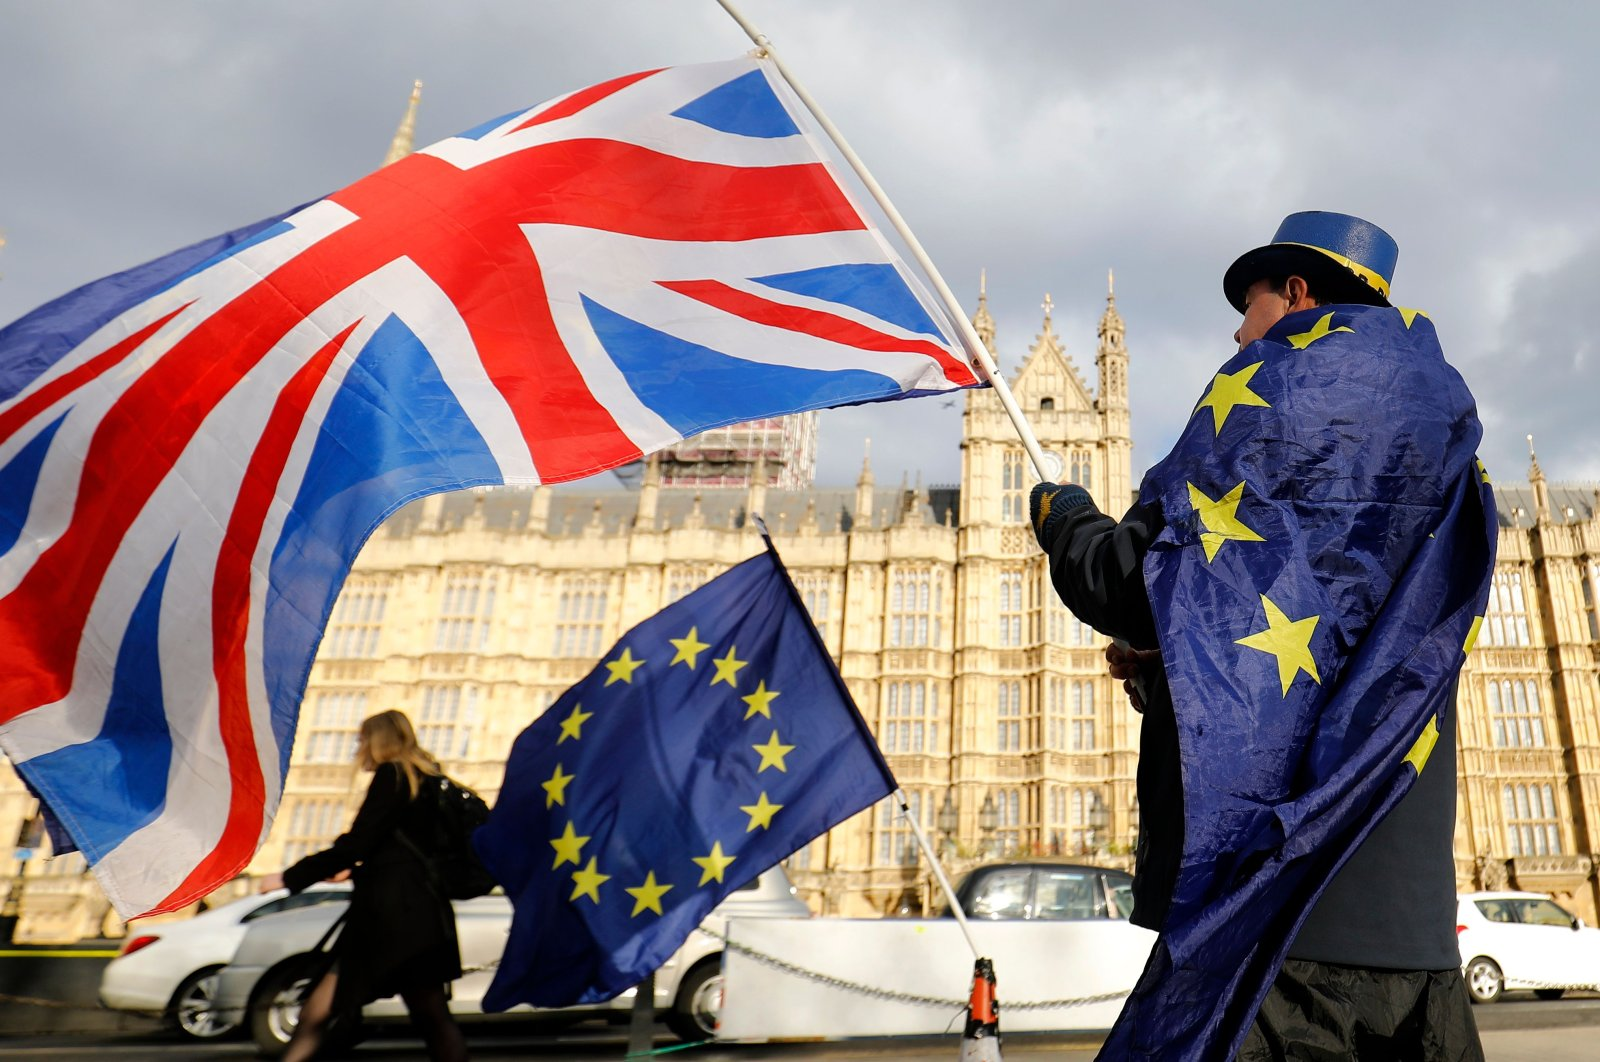 In this file photo, an anti-Brexit demonstrator waves a British flag alongside a European Union flag outside the Houses of Parliament in London, March 28, 2018. (AFP Photo)